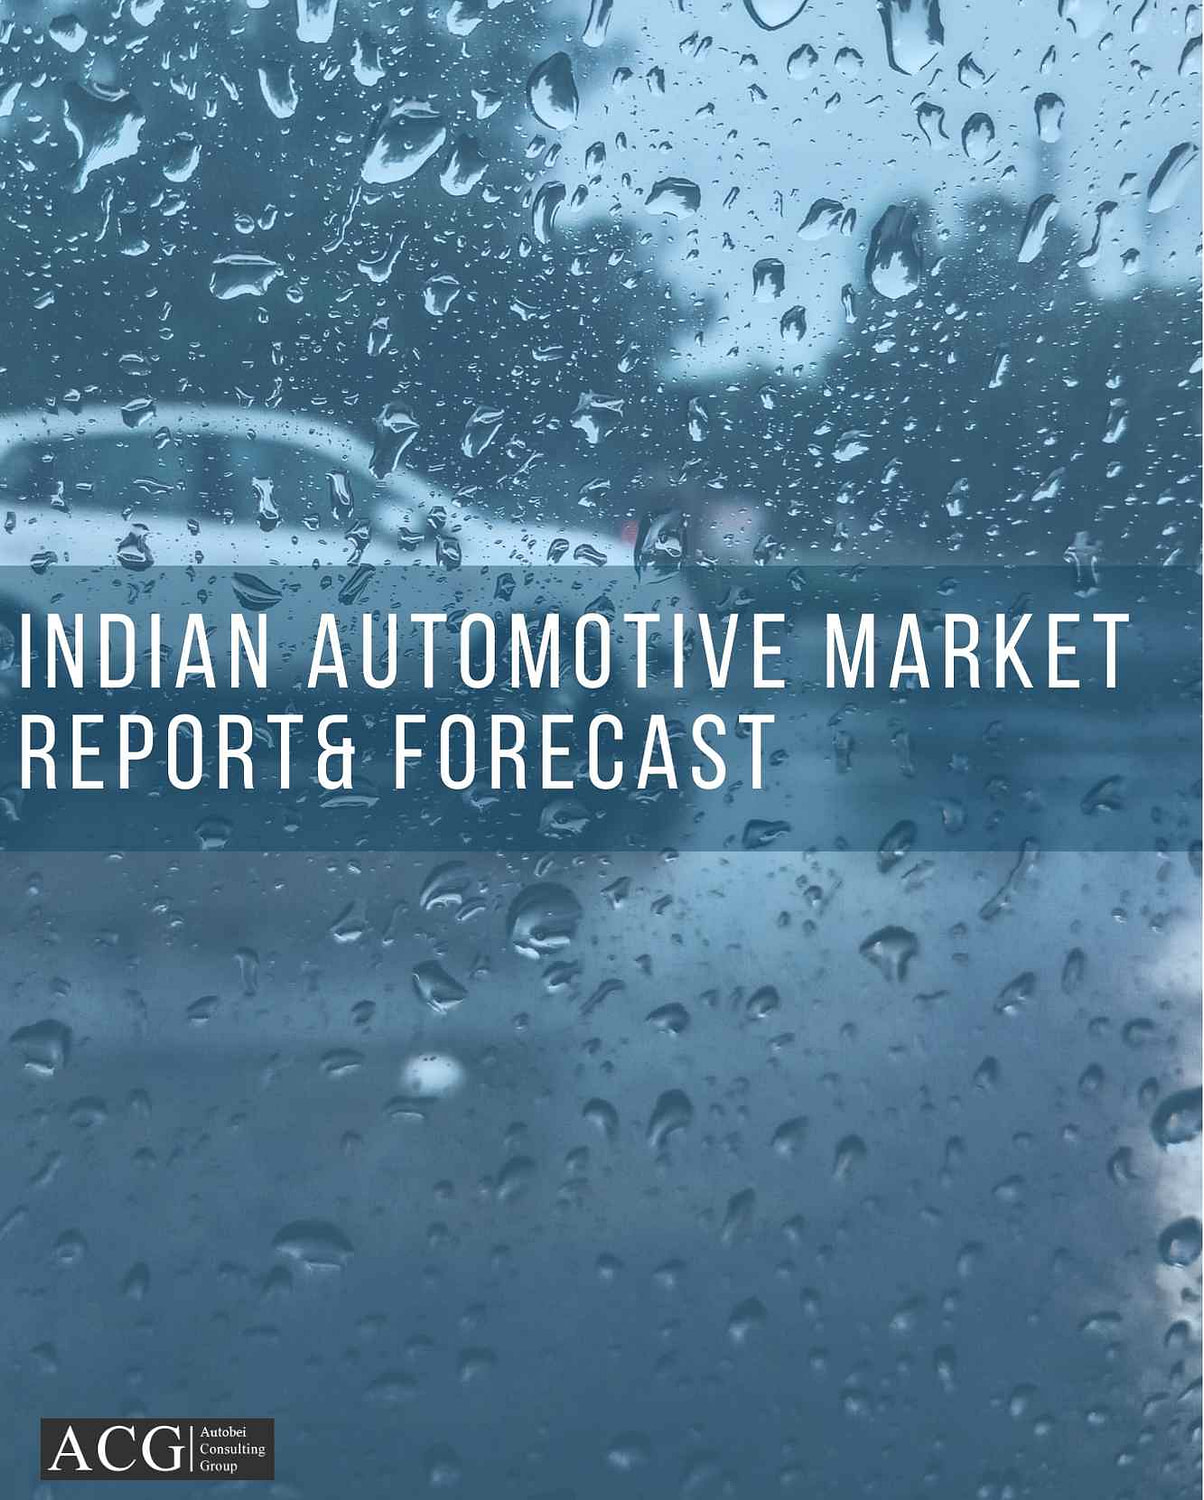 Indian Automotive Market report FY 2020